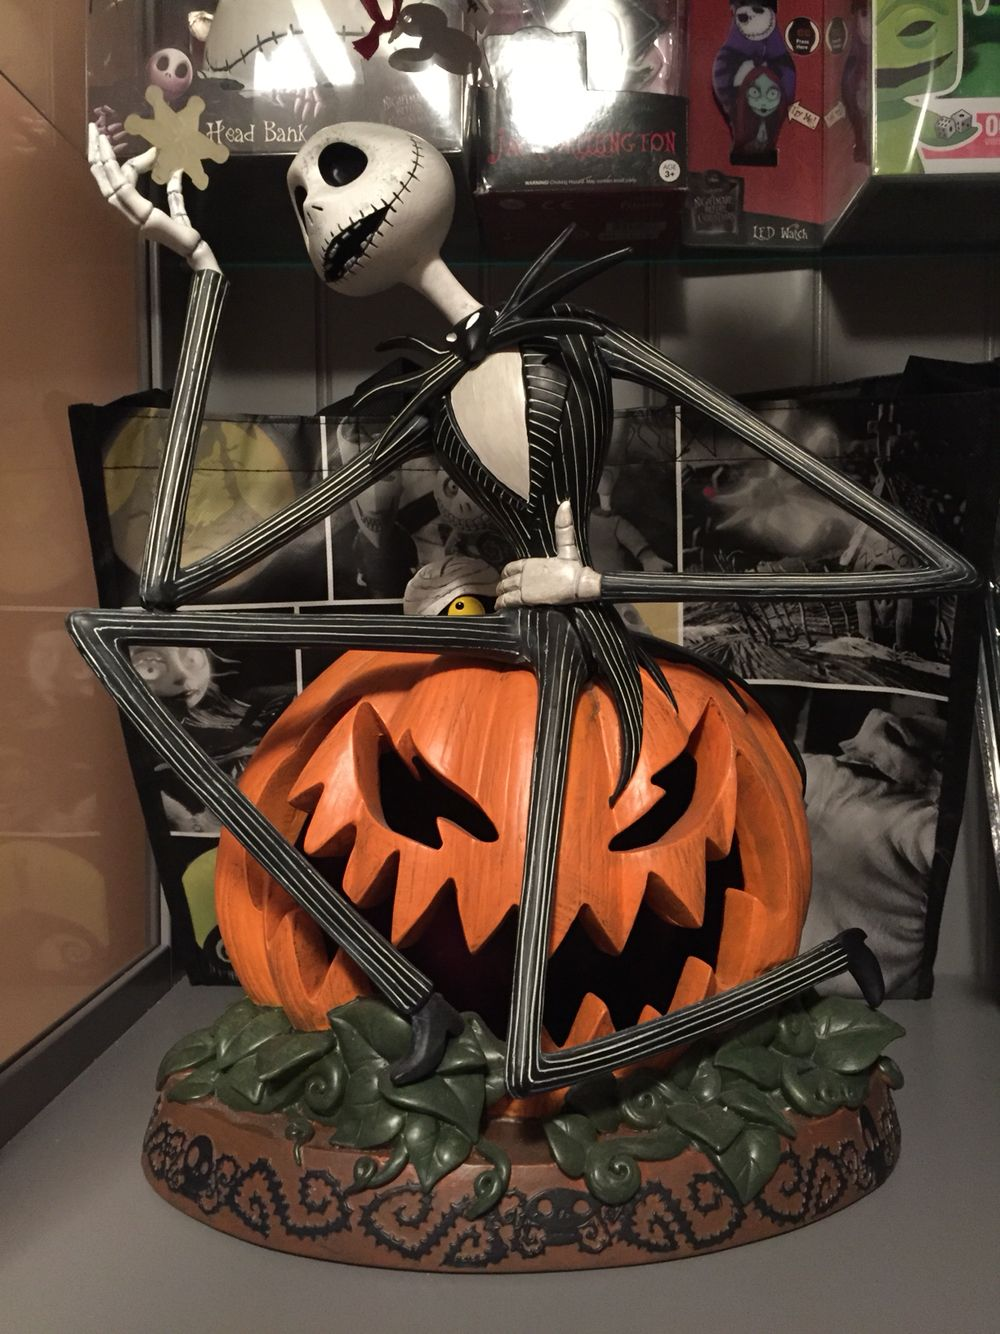 The figure is Tim Burton\'s Nightmare Before Christmas character Jack ...